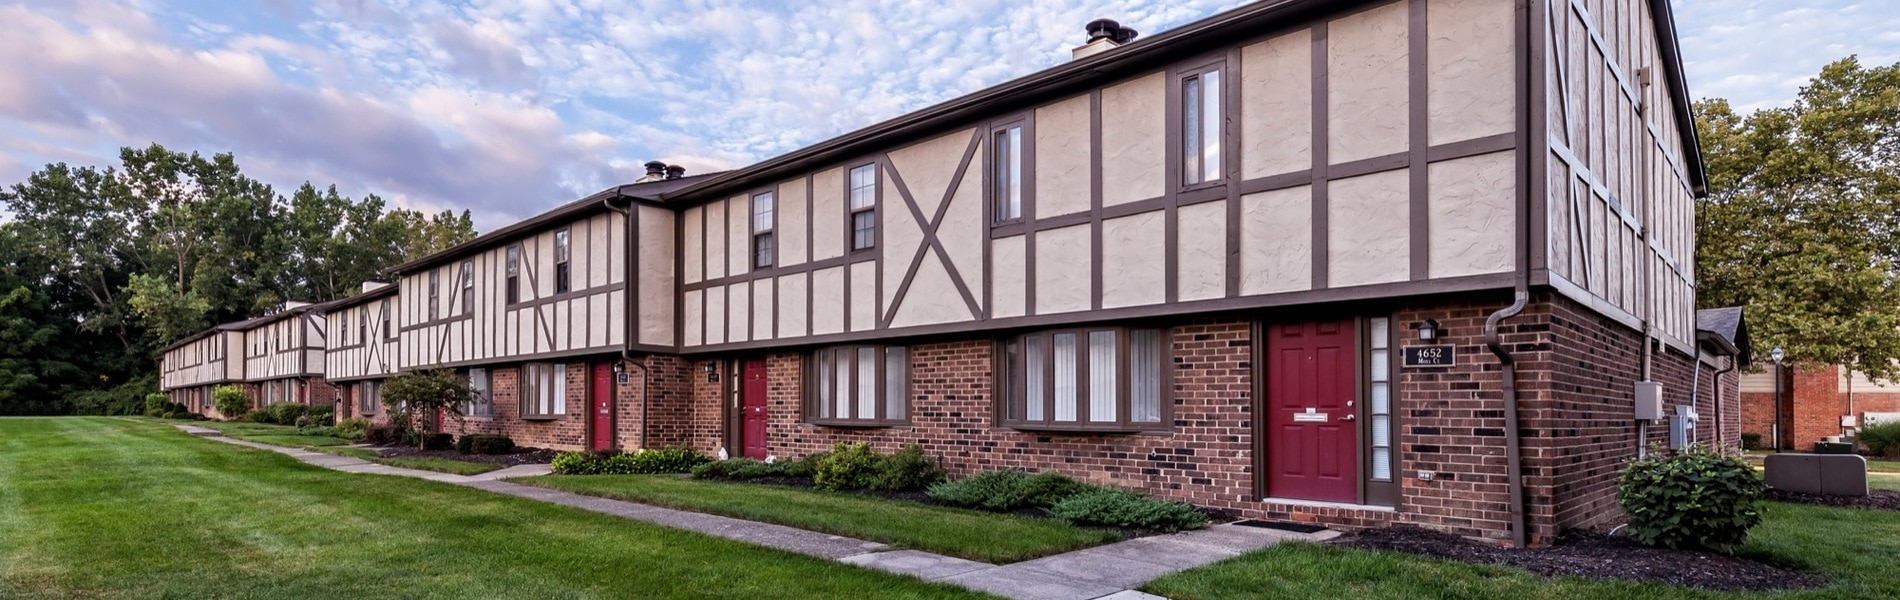 Apartments for Rent in Columbus, OH | Olentangy Commons - Home